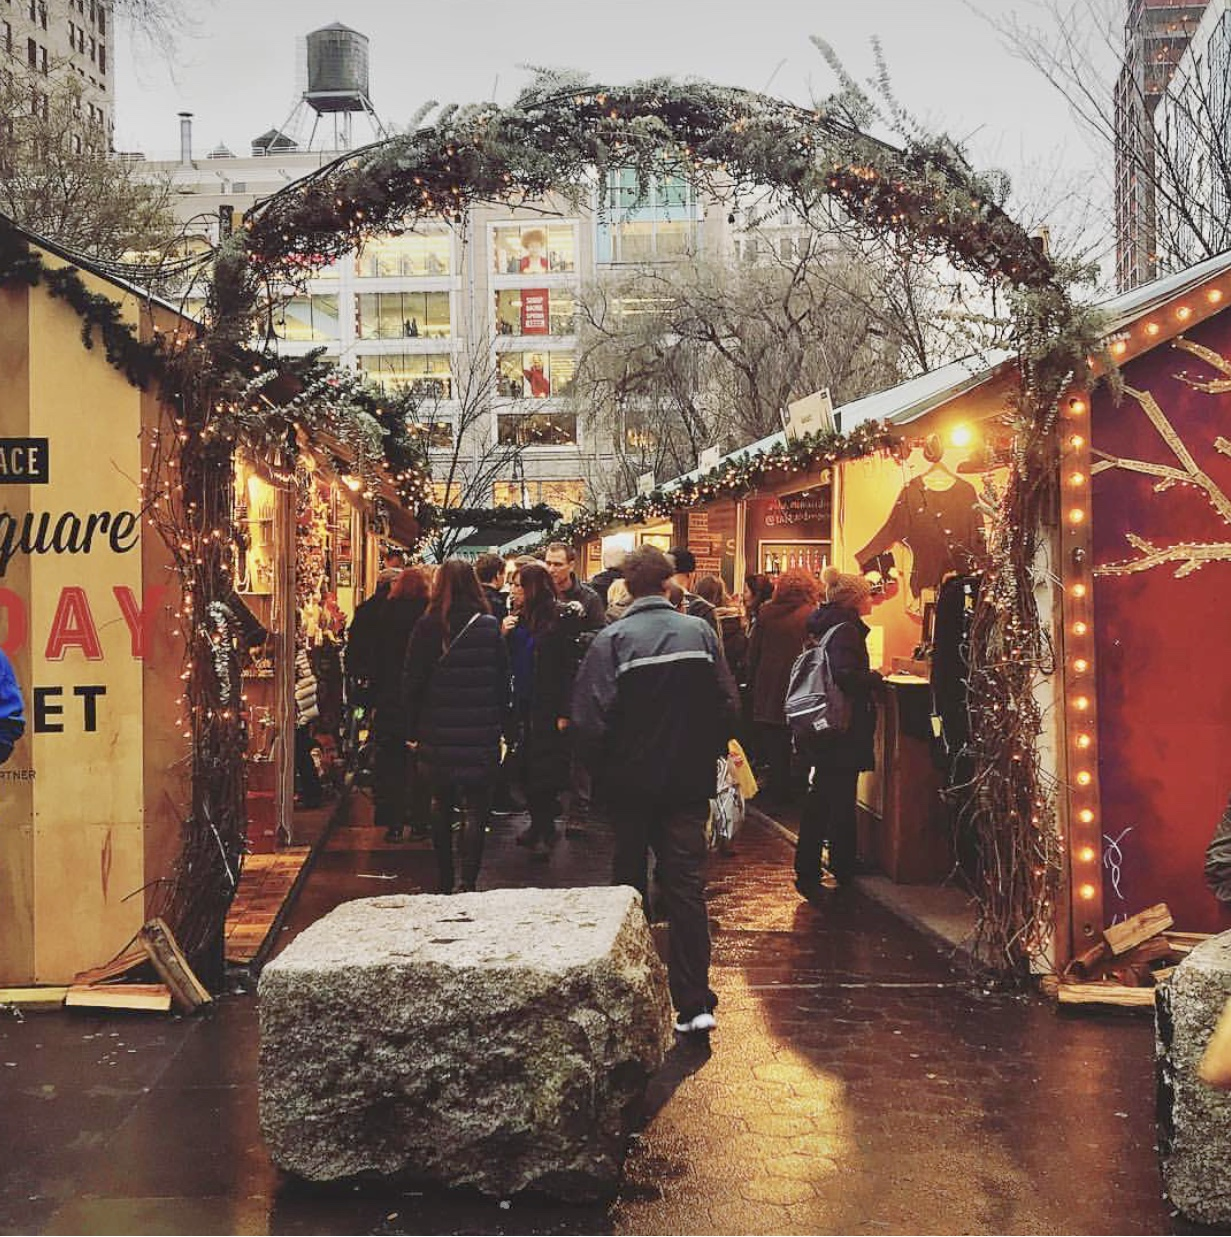 5 Must-Dos In NYC This Holiday Season - Christmas in NYC - New York at Christmas time - NYC Christmas Tree - Christmas Market NYC - Christmas Shows in NYC - Things To Do In NYC At Christmas - Rockefeller Center - Brooklyn Bridge Park - The Highline - Tips For Visiting NYC - NYC Travel Blog - #NYC #Christmas #travel